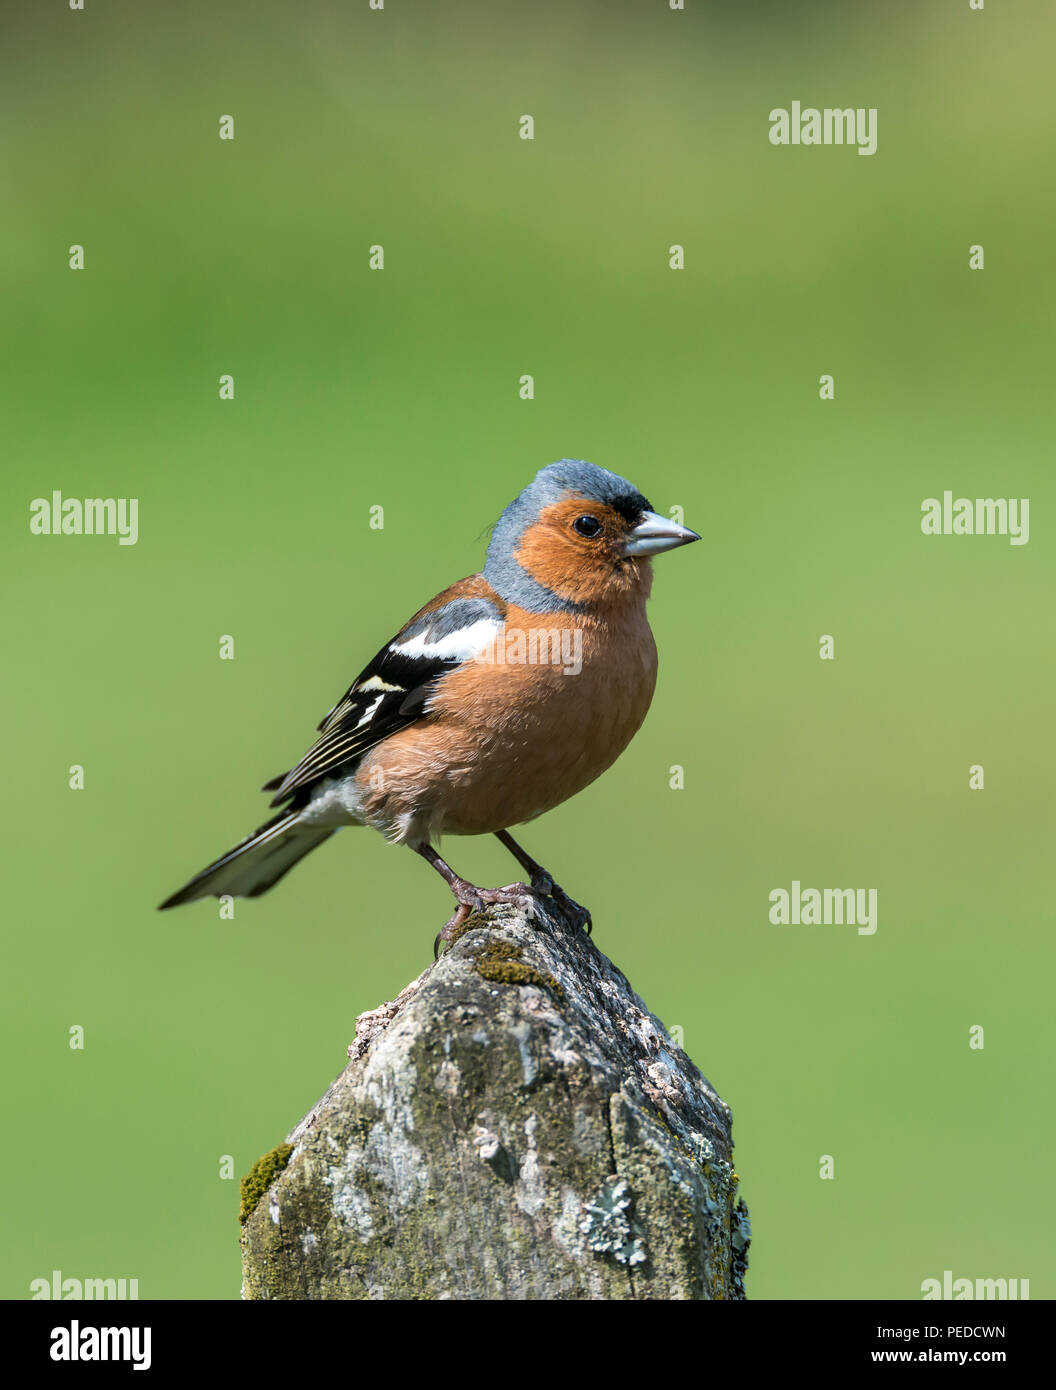 Chaffinch, Hexham, Northumberland, UK - Stock Image